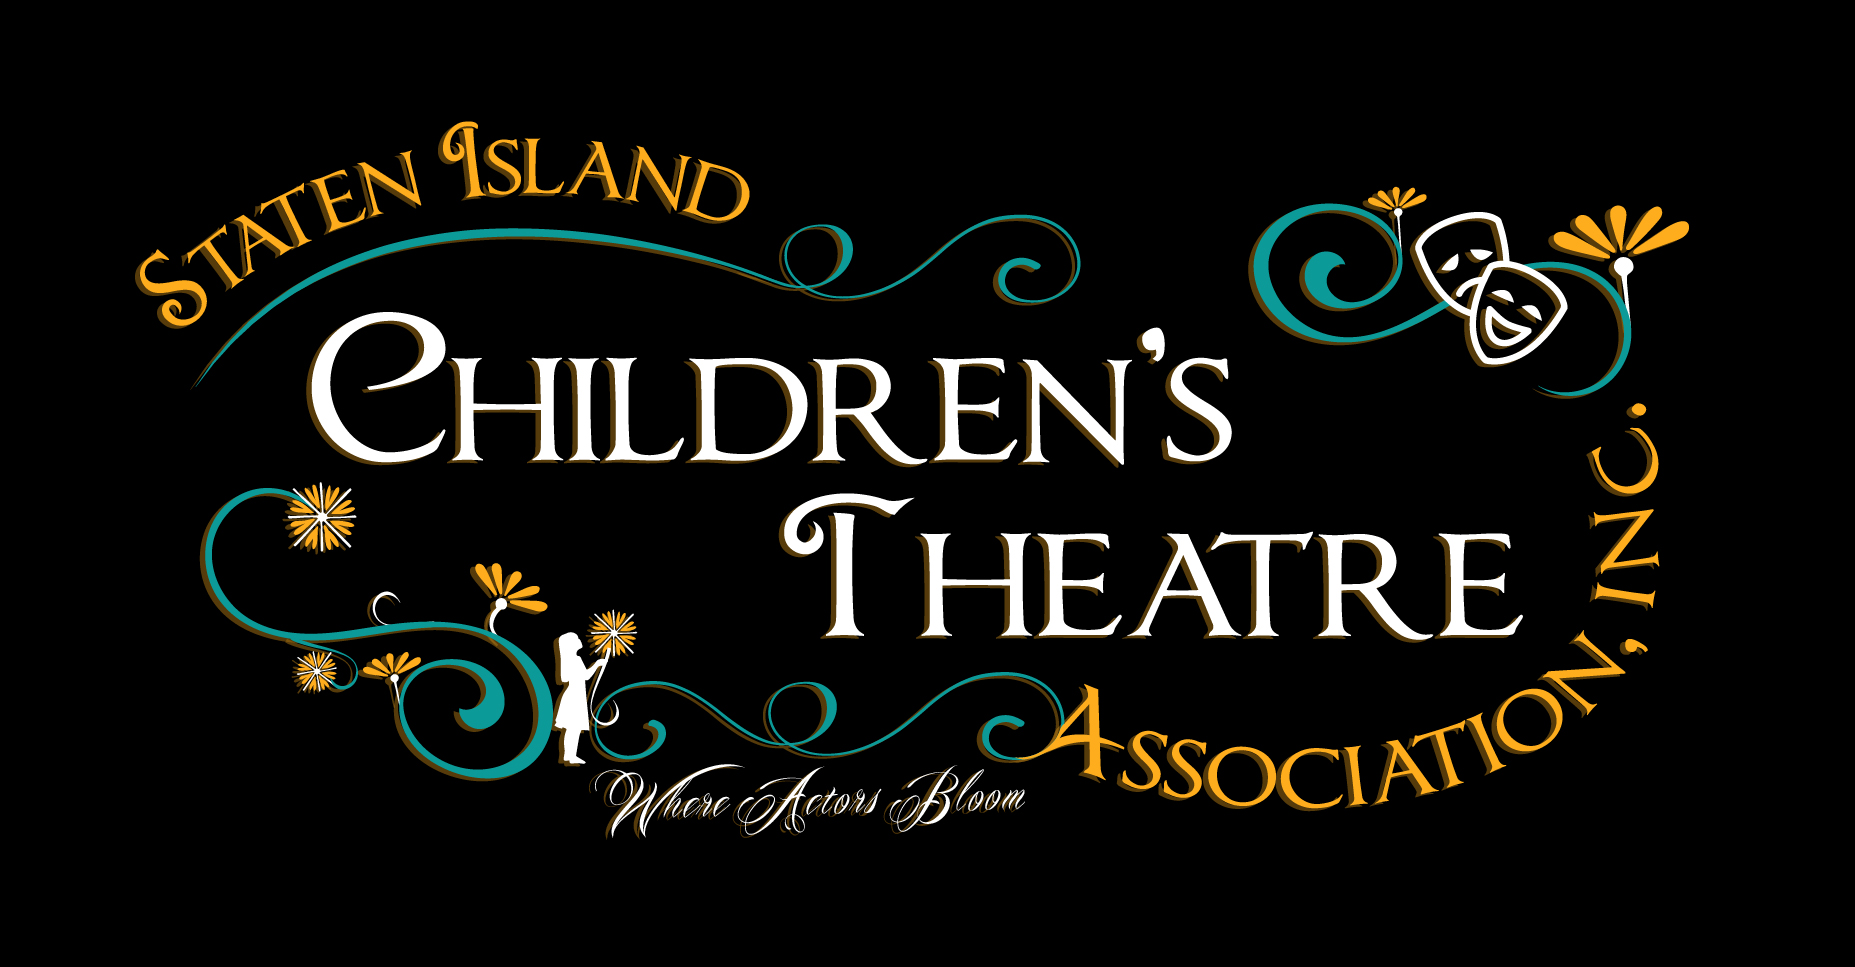 Staten Island Children's Theatre Association, Inc.